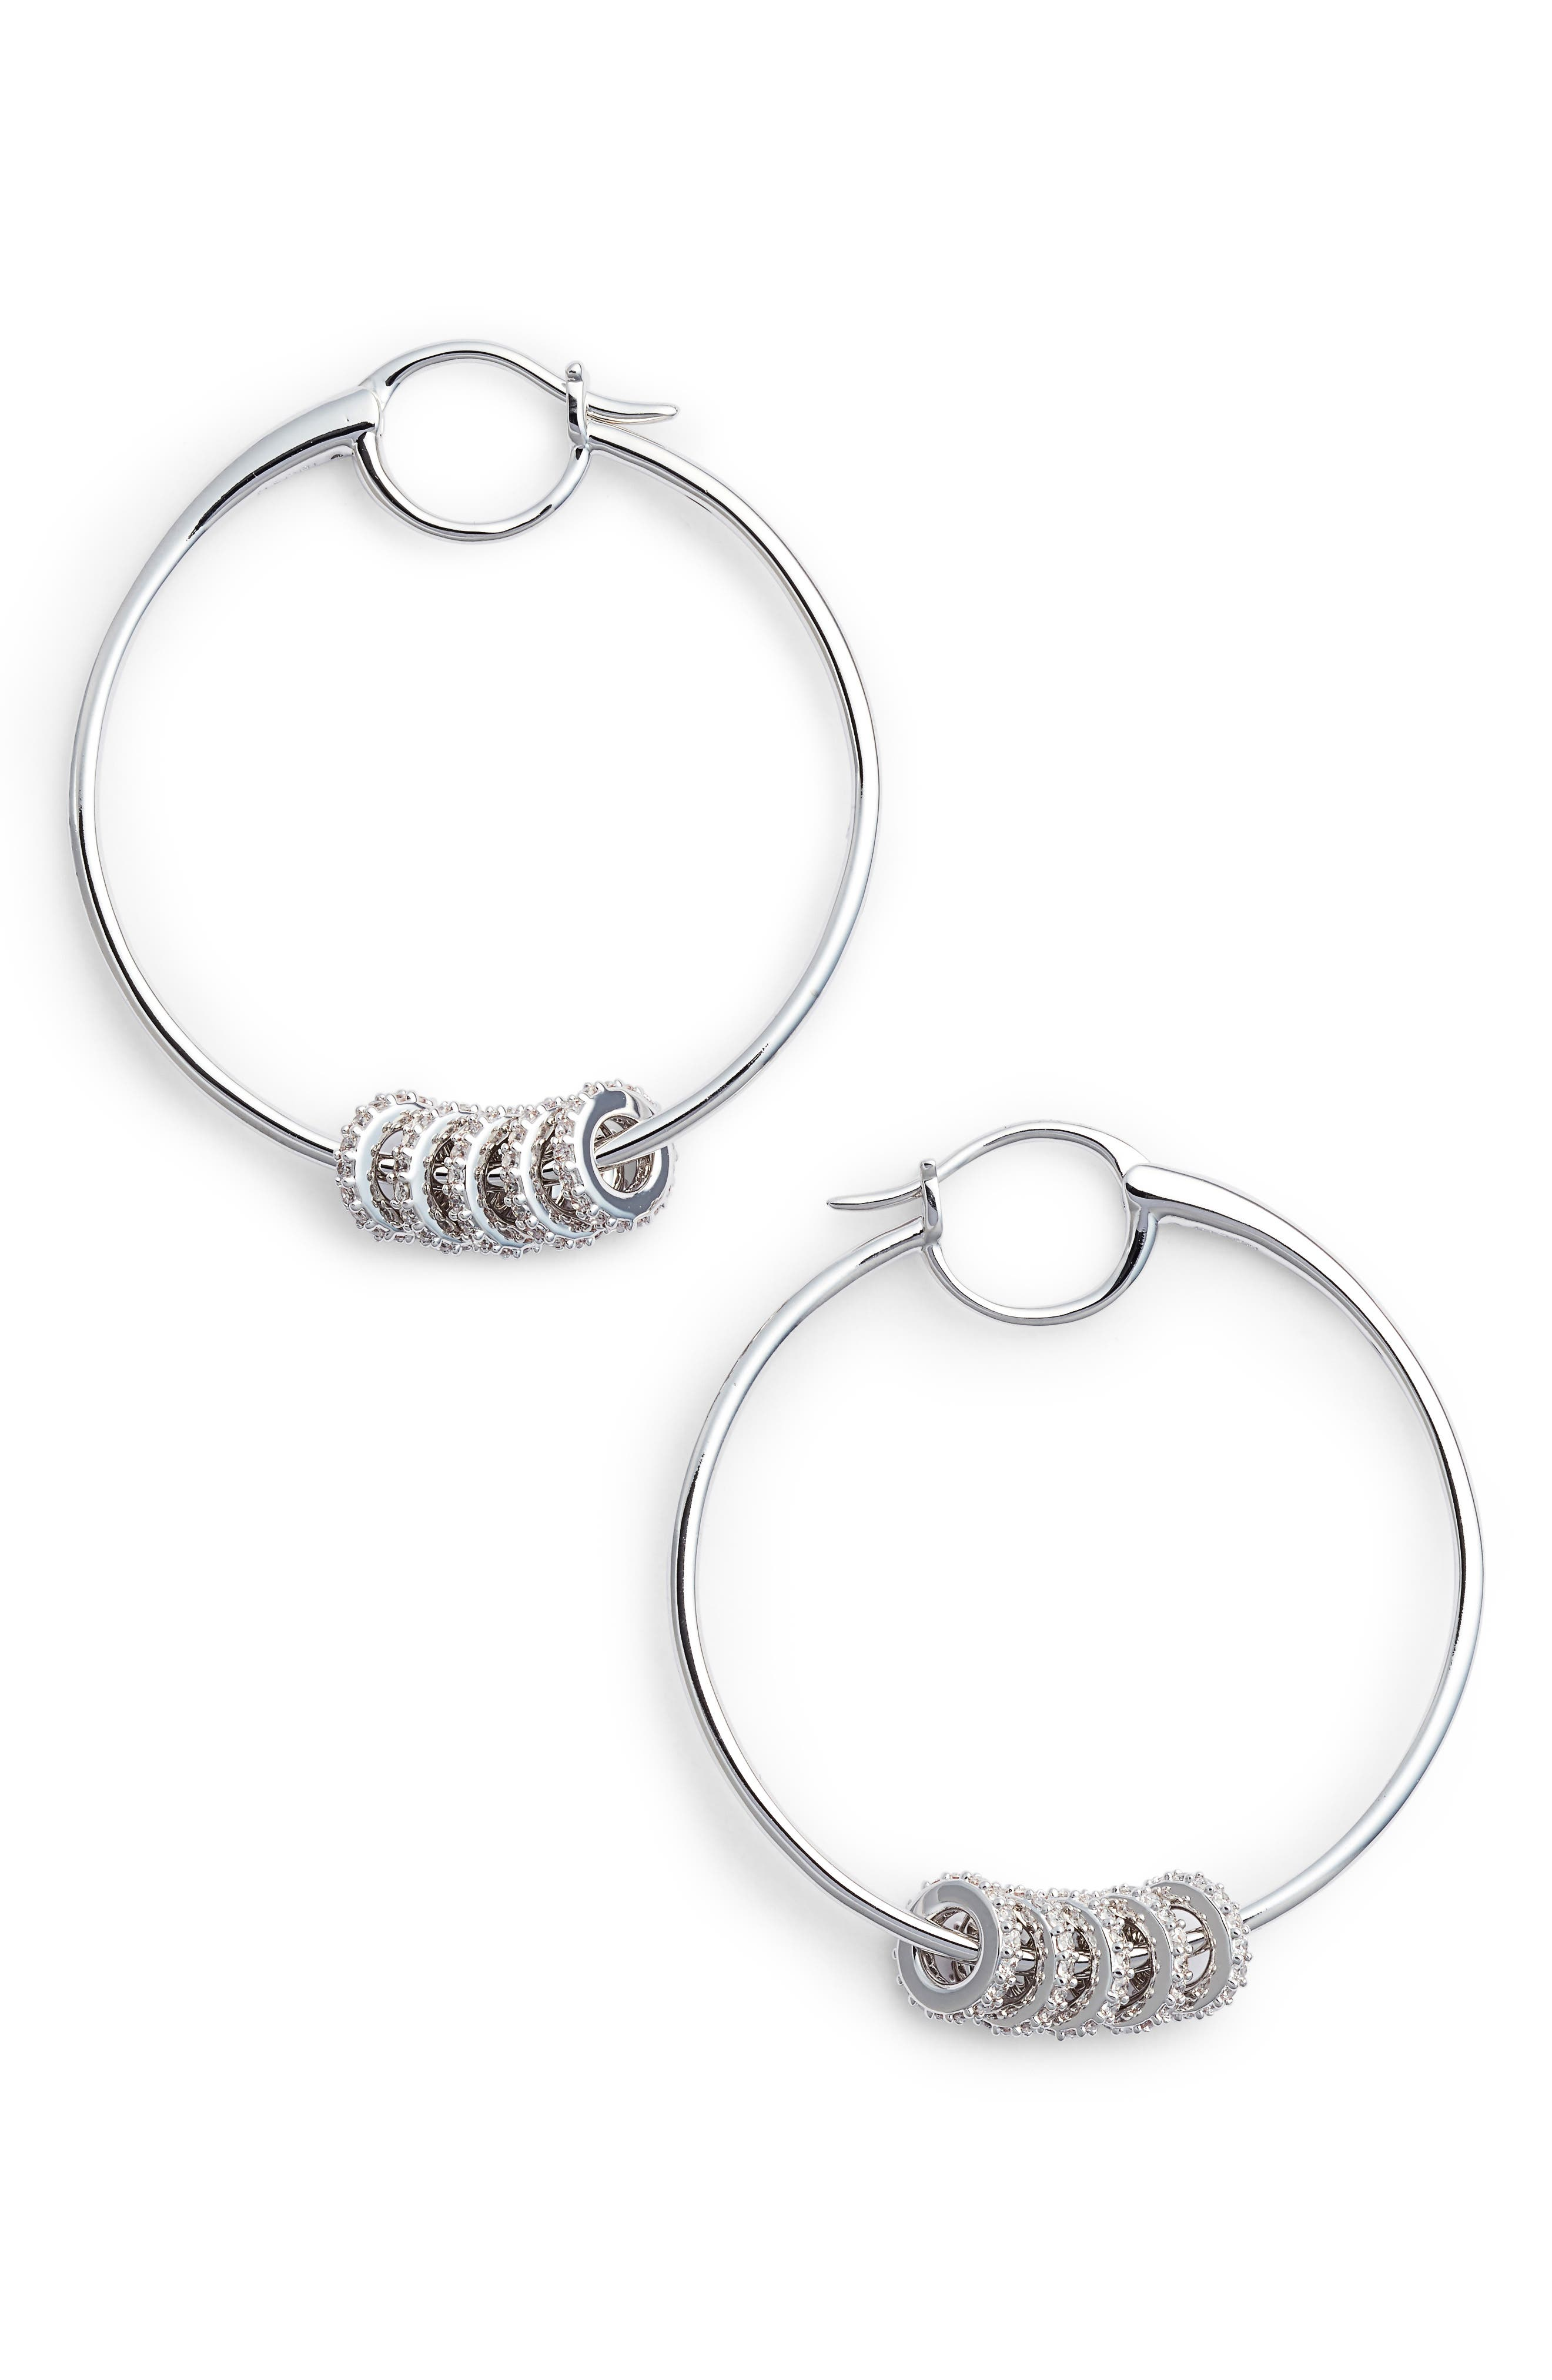 Hoop Earrings,                             Main thumbnail 1, color,                             SILVER